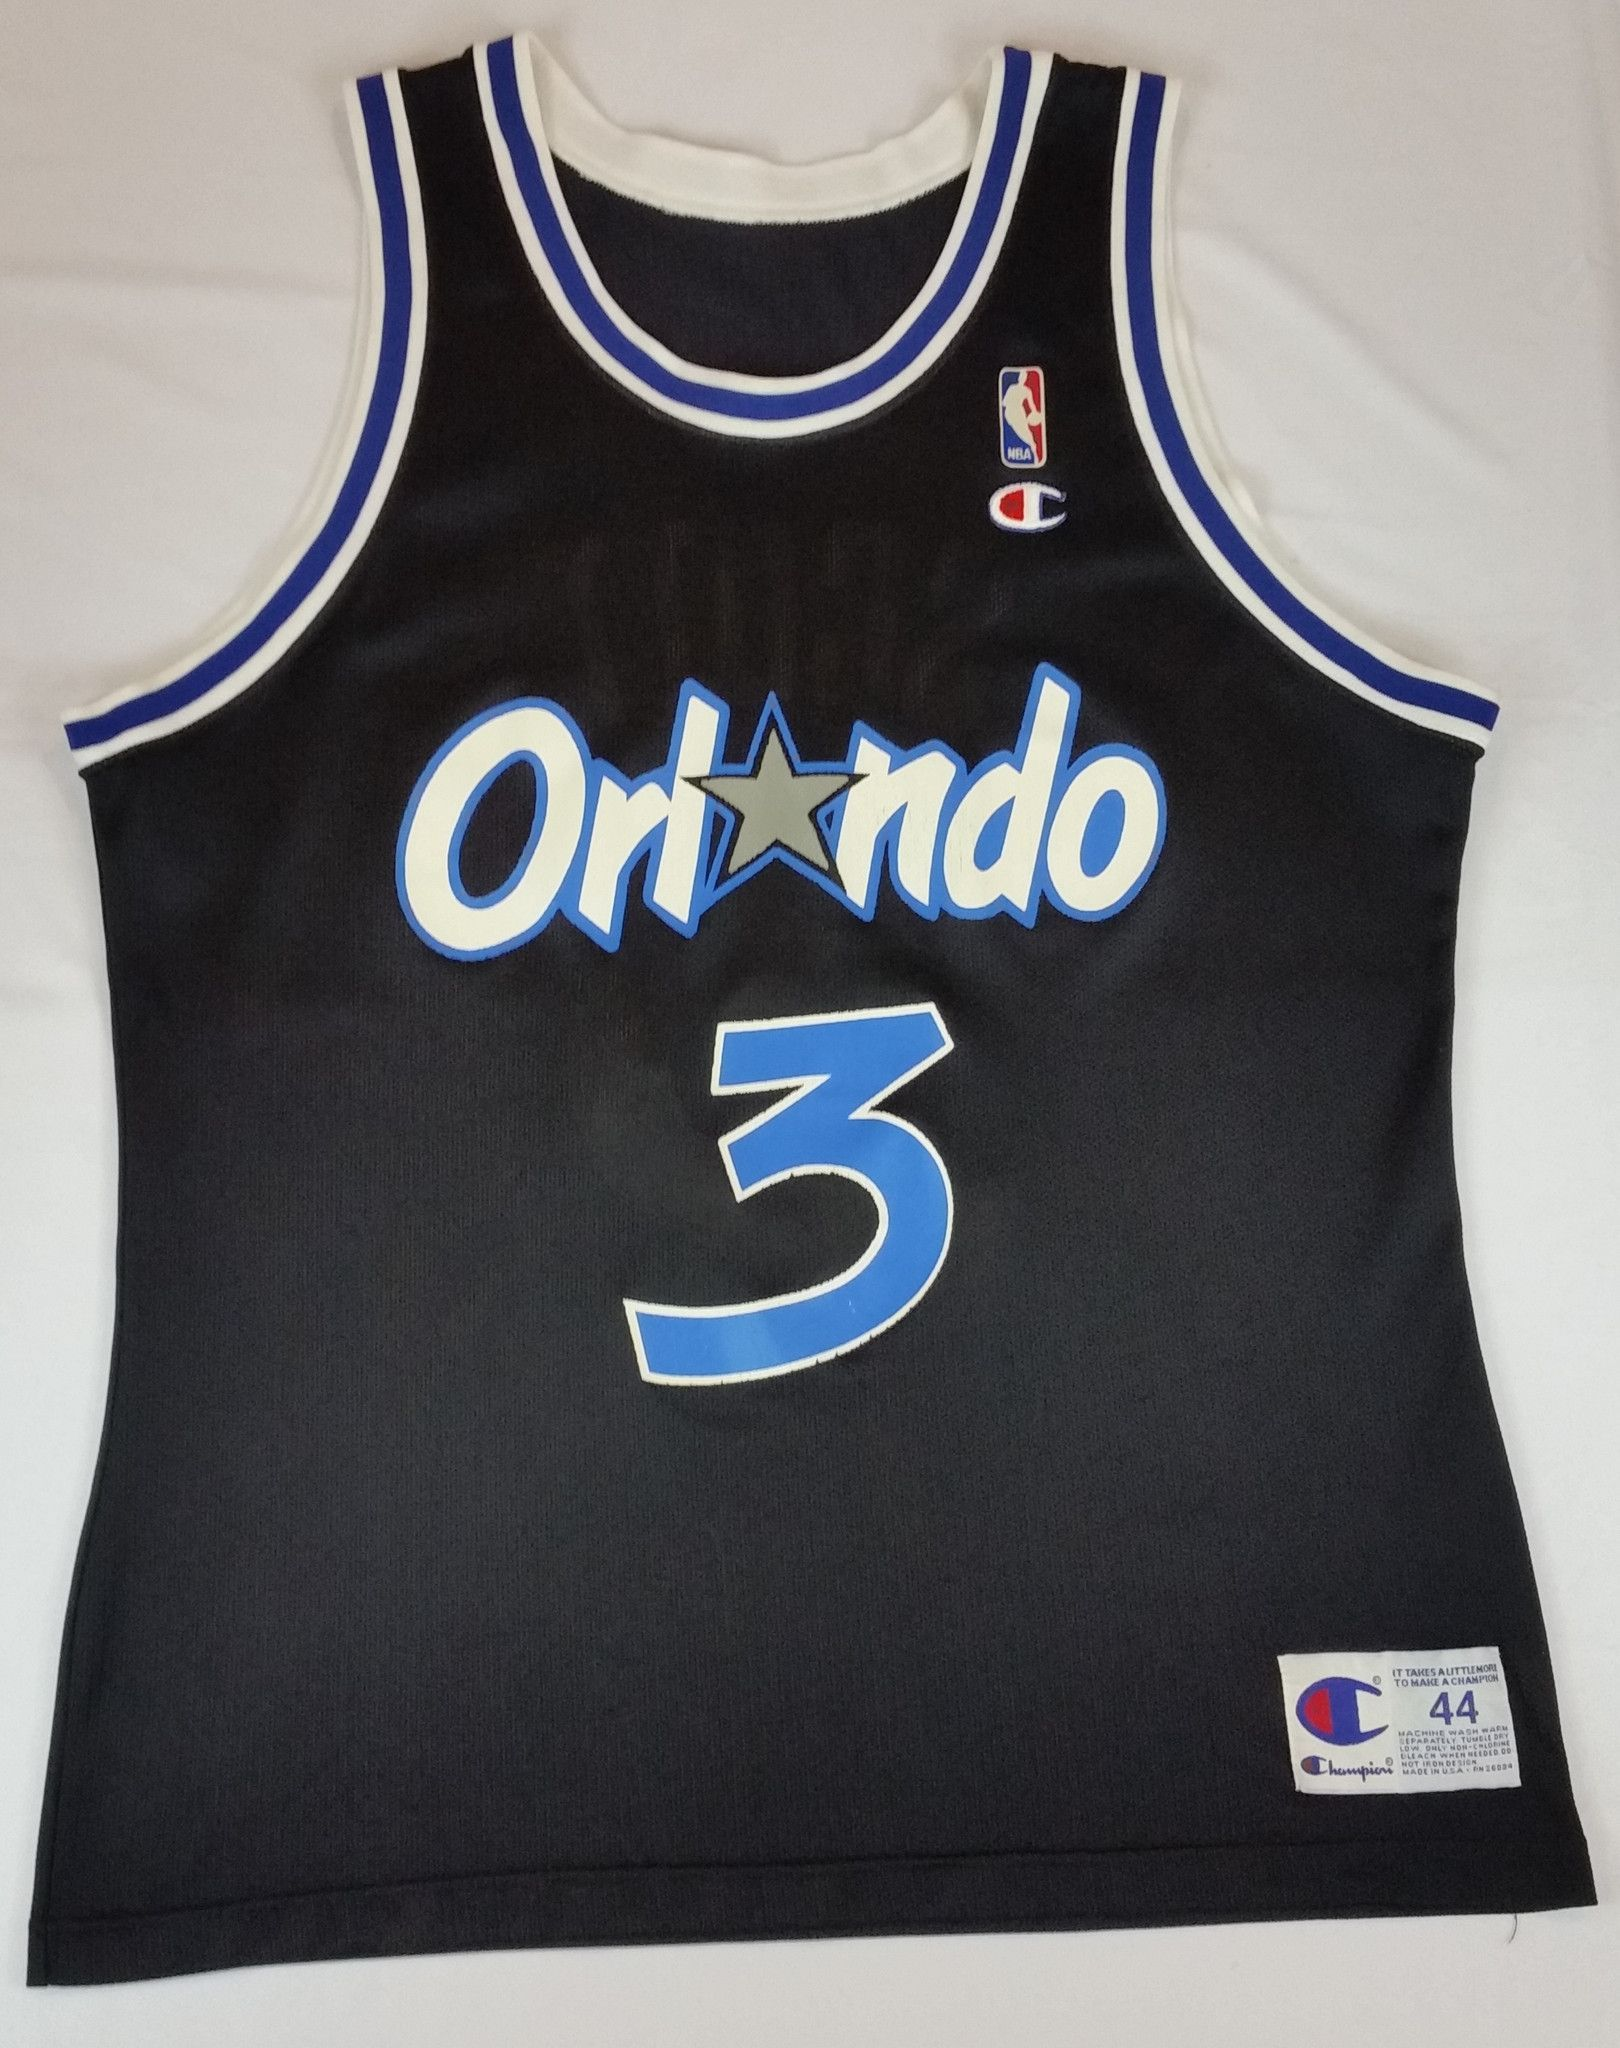 Home all star all star game 2015 comprare canotta nba all - Dennis Scott 3 Champion Jersey Vintage Orlando Magic Nba Rare Alternate Mens 44